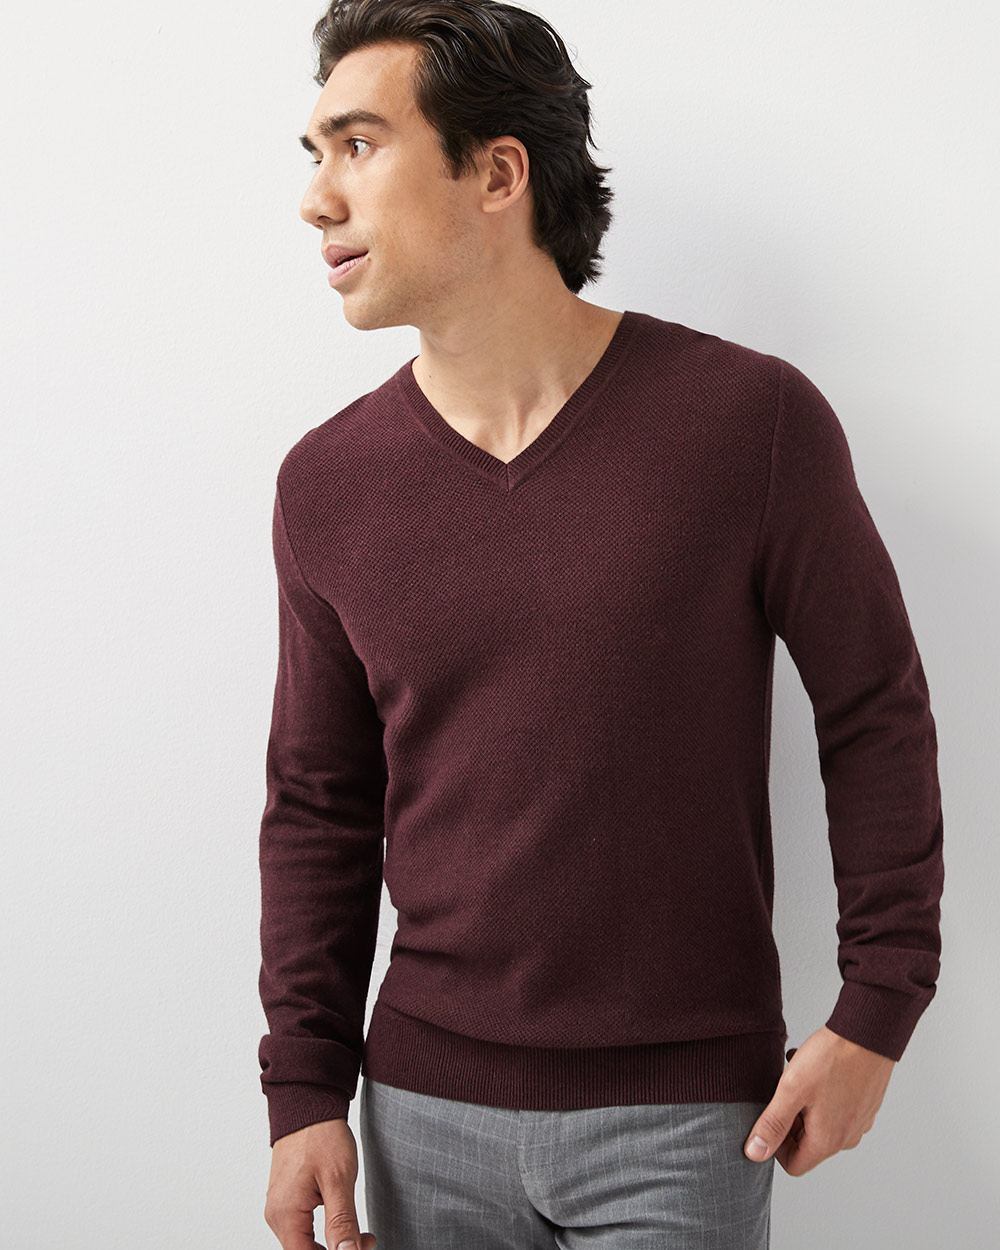 f98071a5028 Textured V-neck sweater